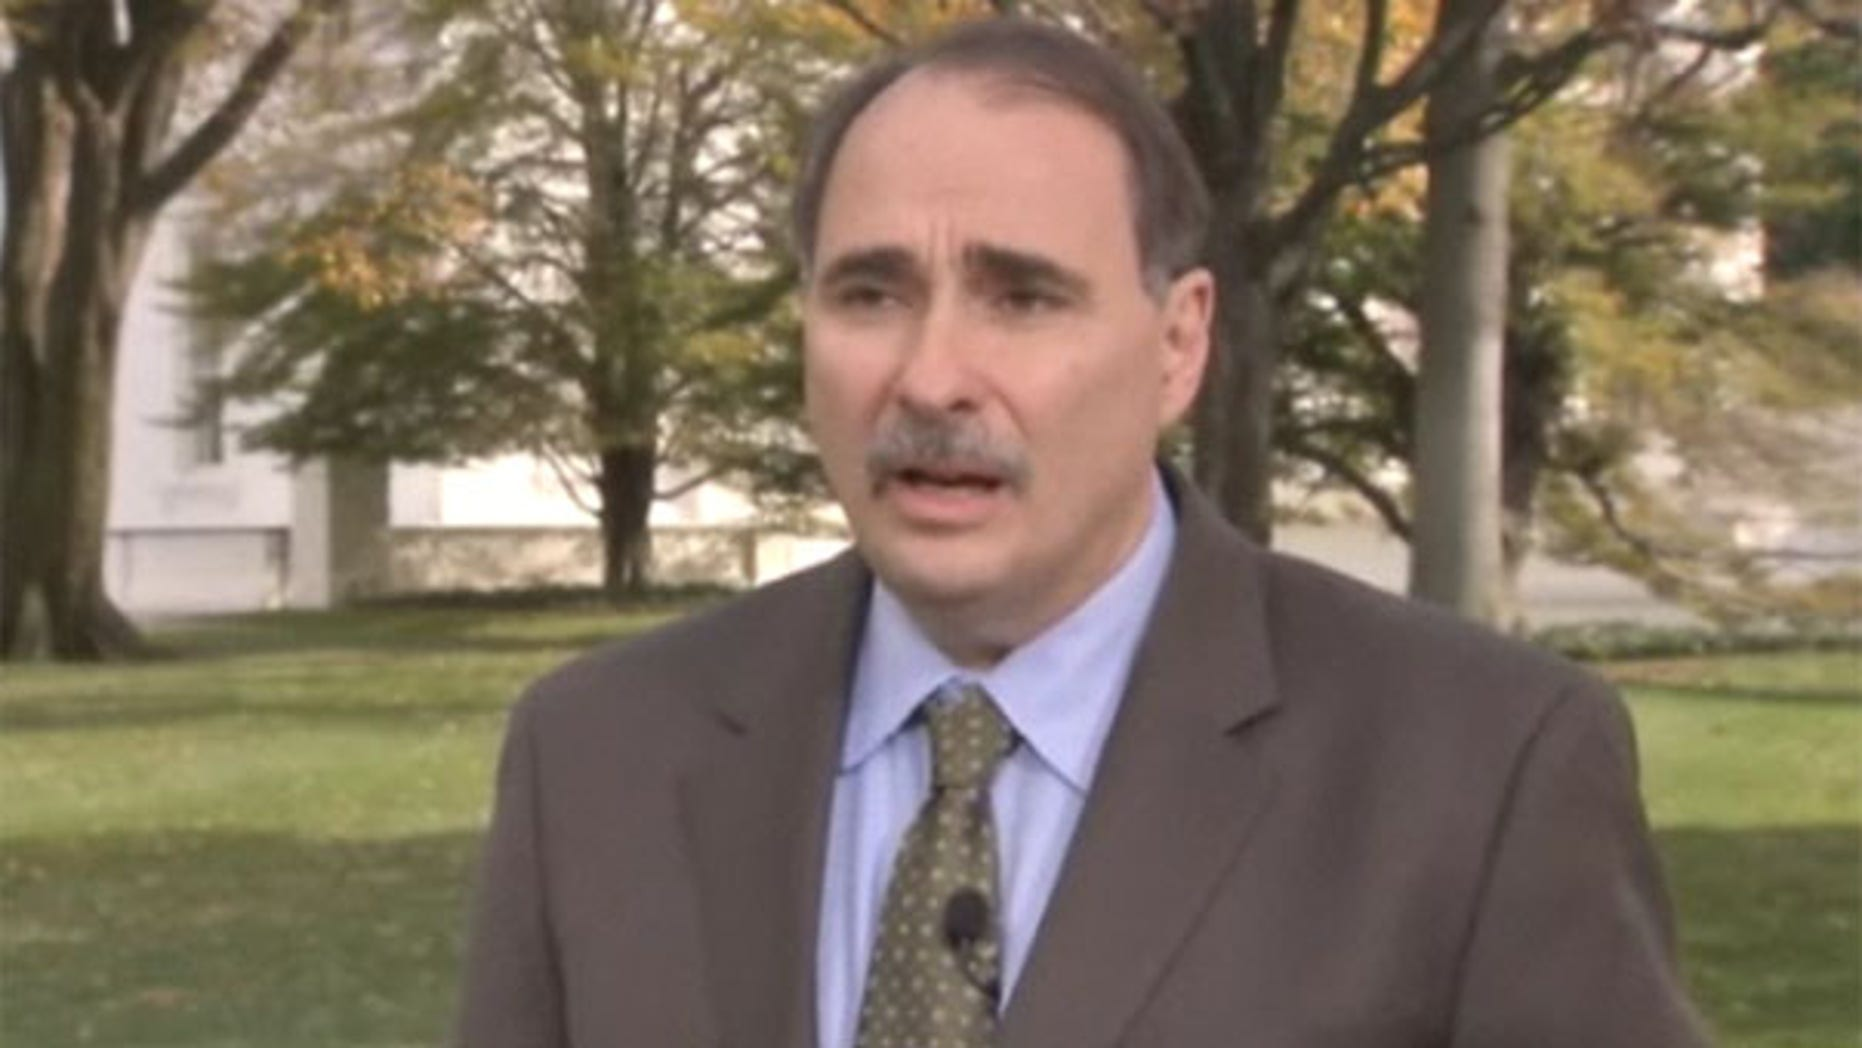 White House senior adviser David Axelrod said reaching youth and independent voters in 2010 will allow Democrats to continue the president's agenda in Congress (FNC).